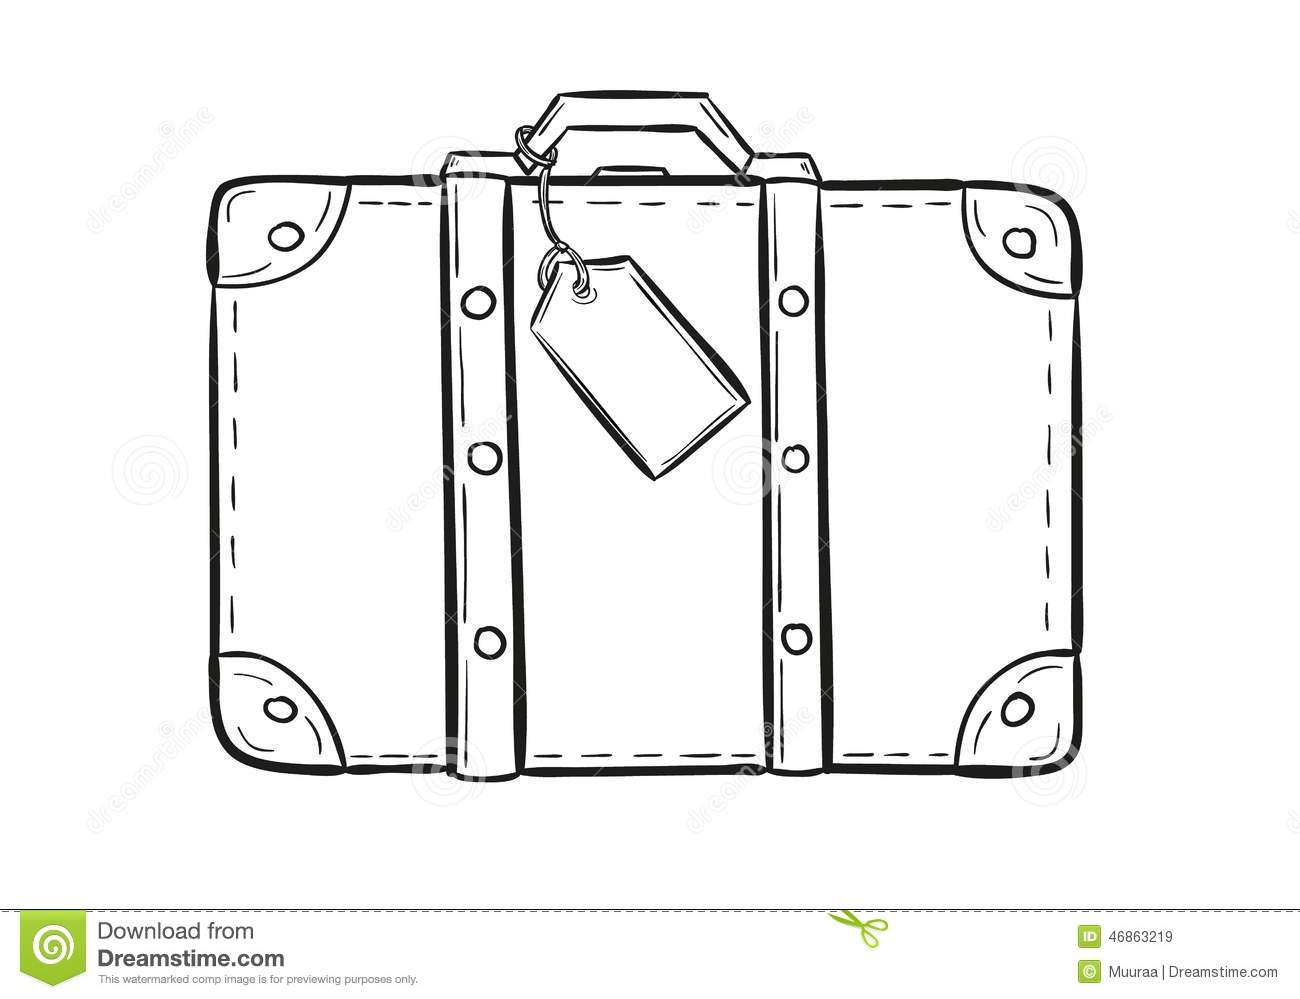 Sketch of the suitcase with tag on white background, isolated.